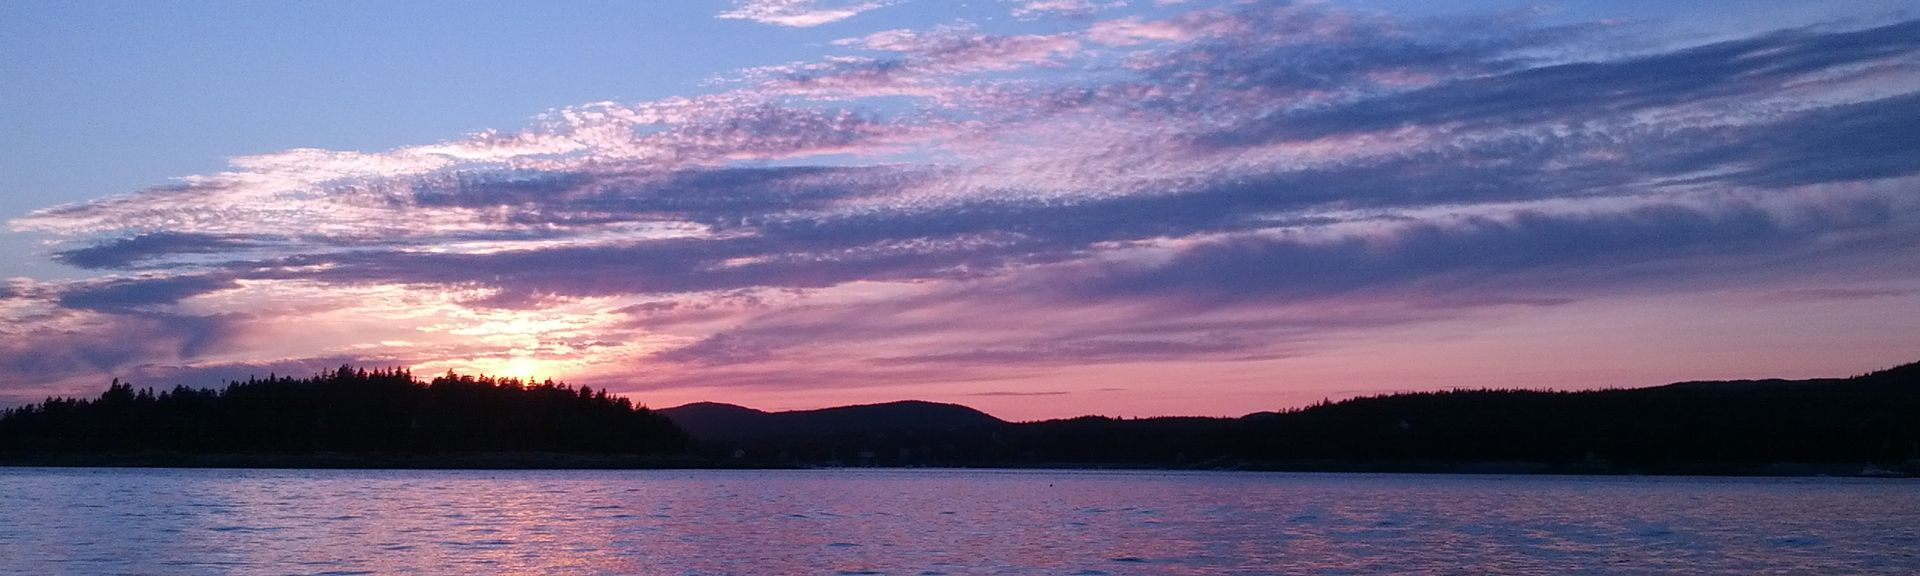 Great Duck Island, Maine, United States